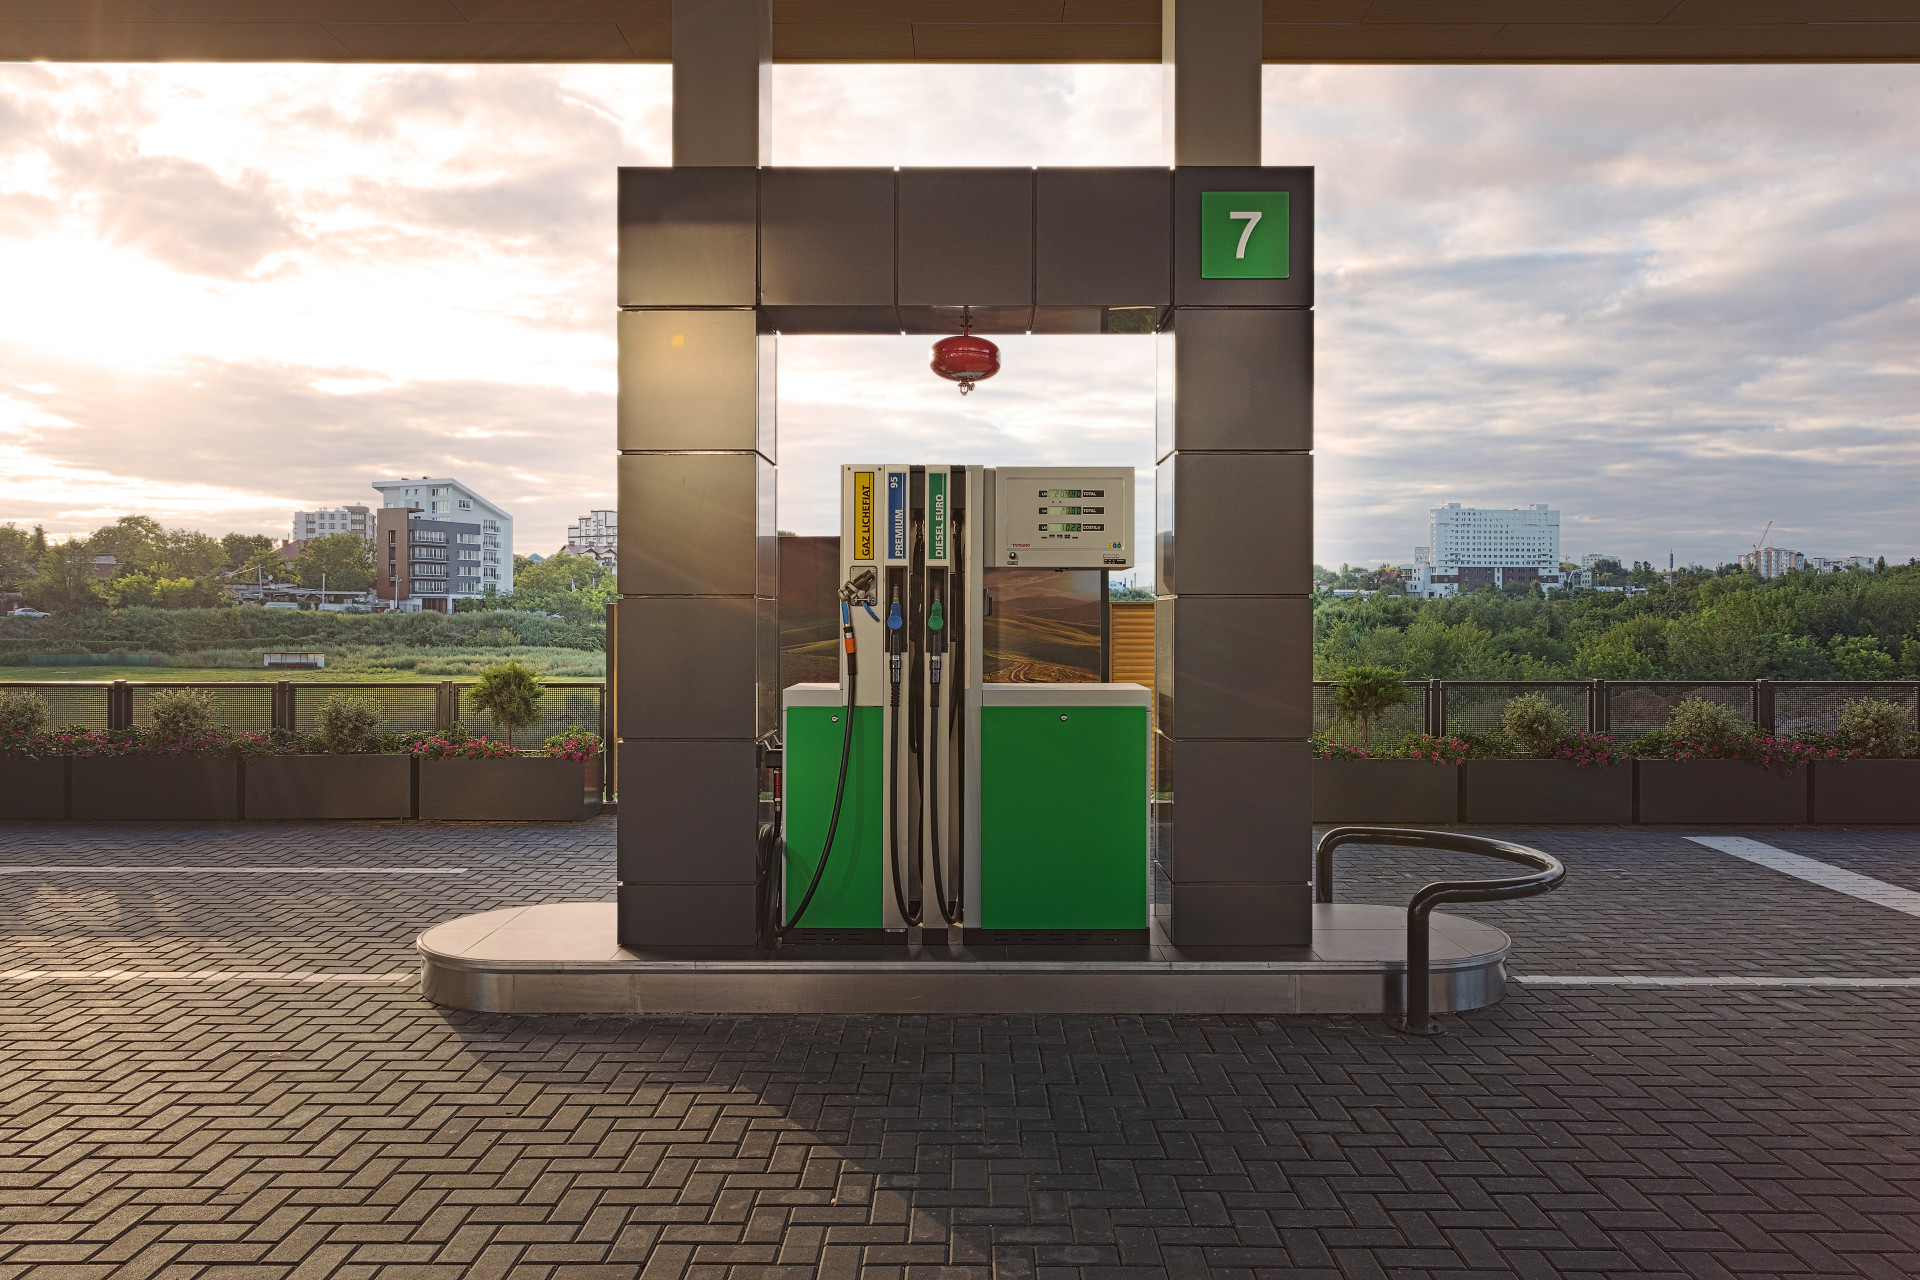 Wisp-A_Gas Station_Petrol Pump